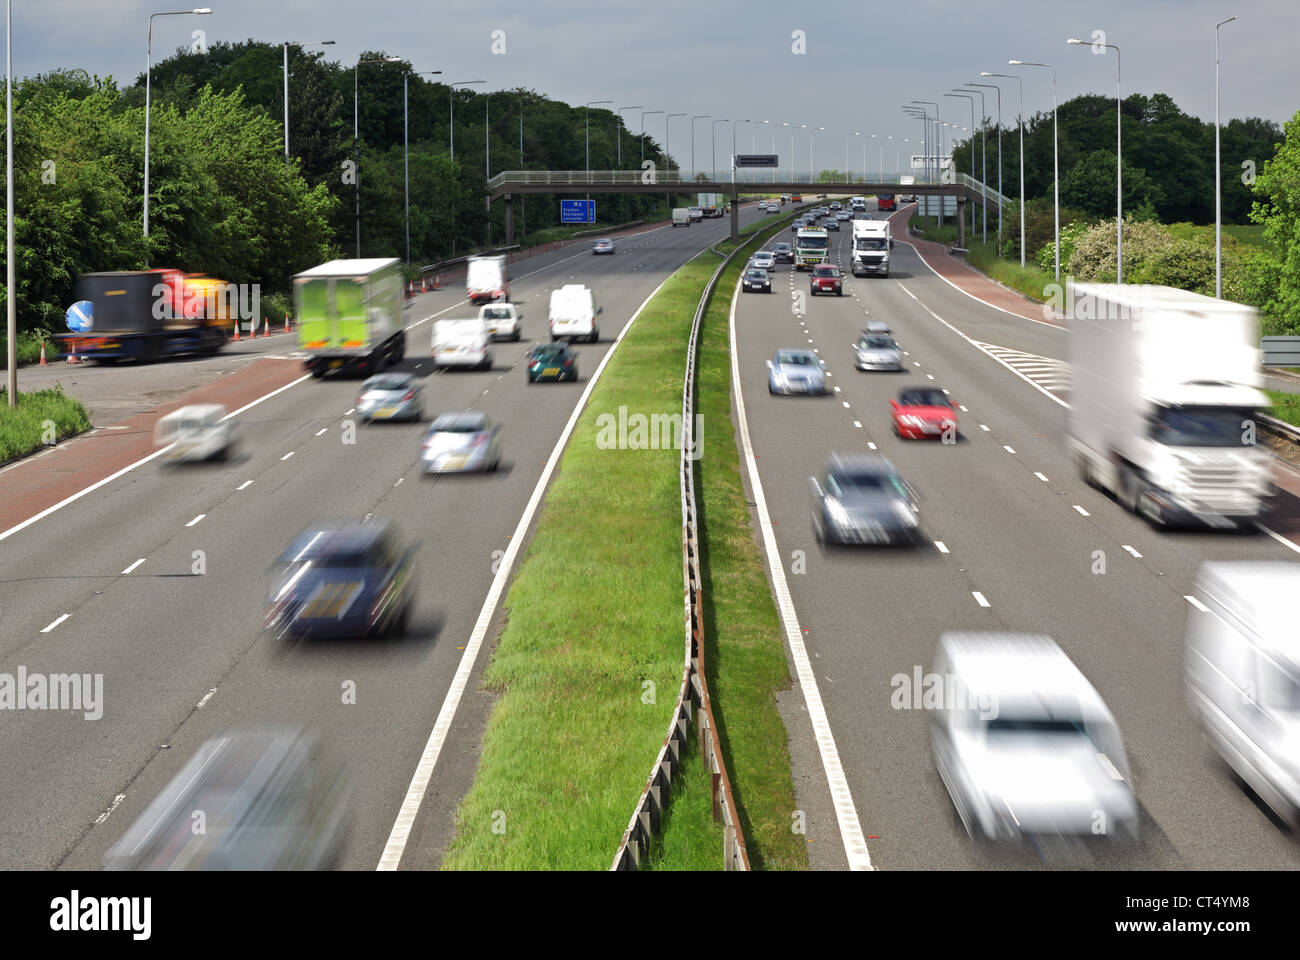 Motorway traffic - Stock Image